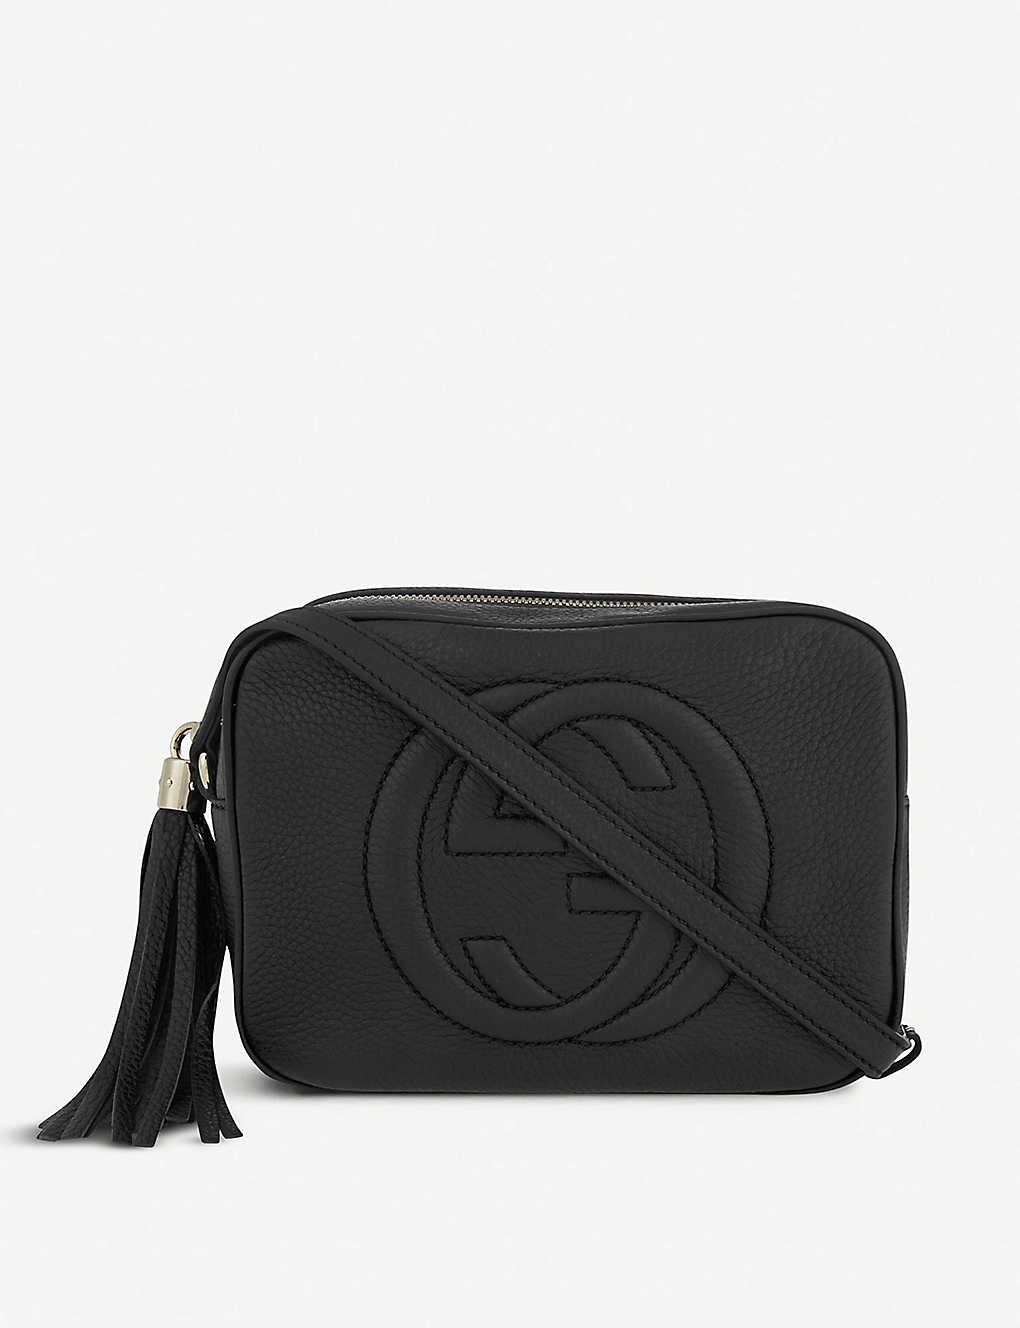 9cd24f0d2e65 GUCCI - Soho leather cross-body bag | Selfridges.com